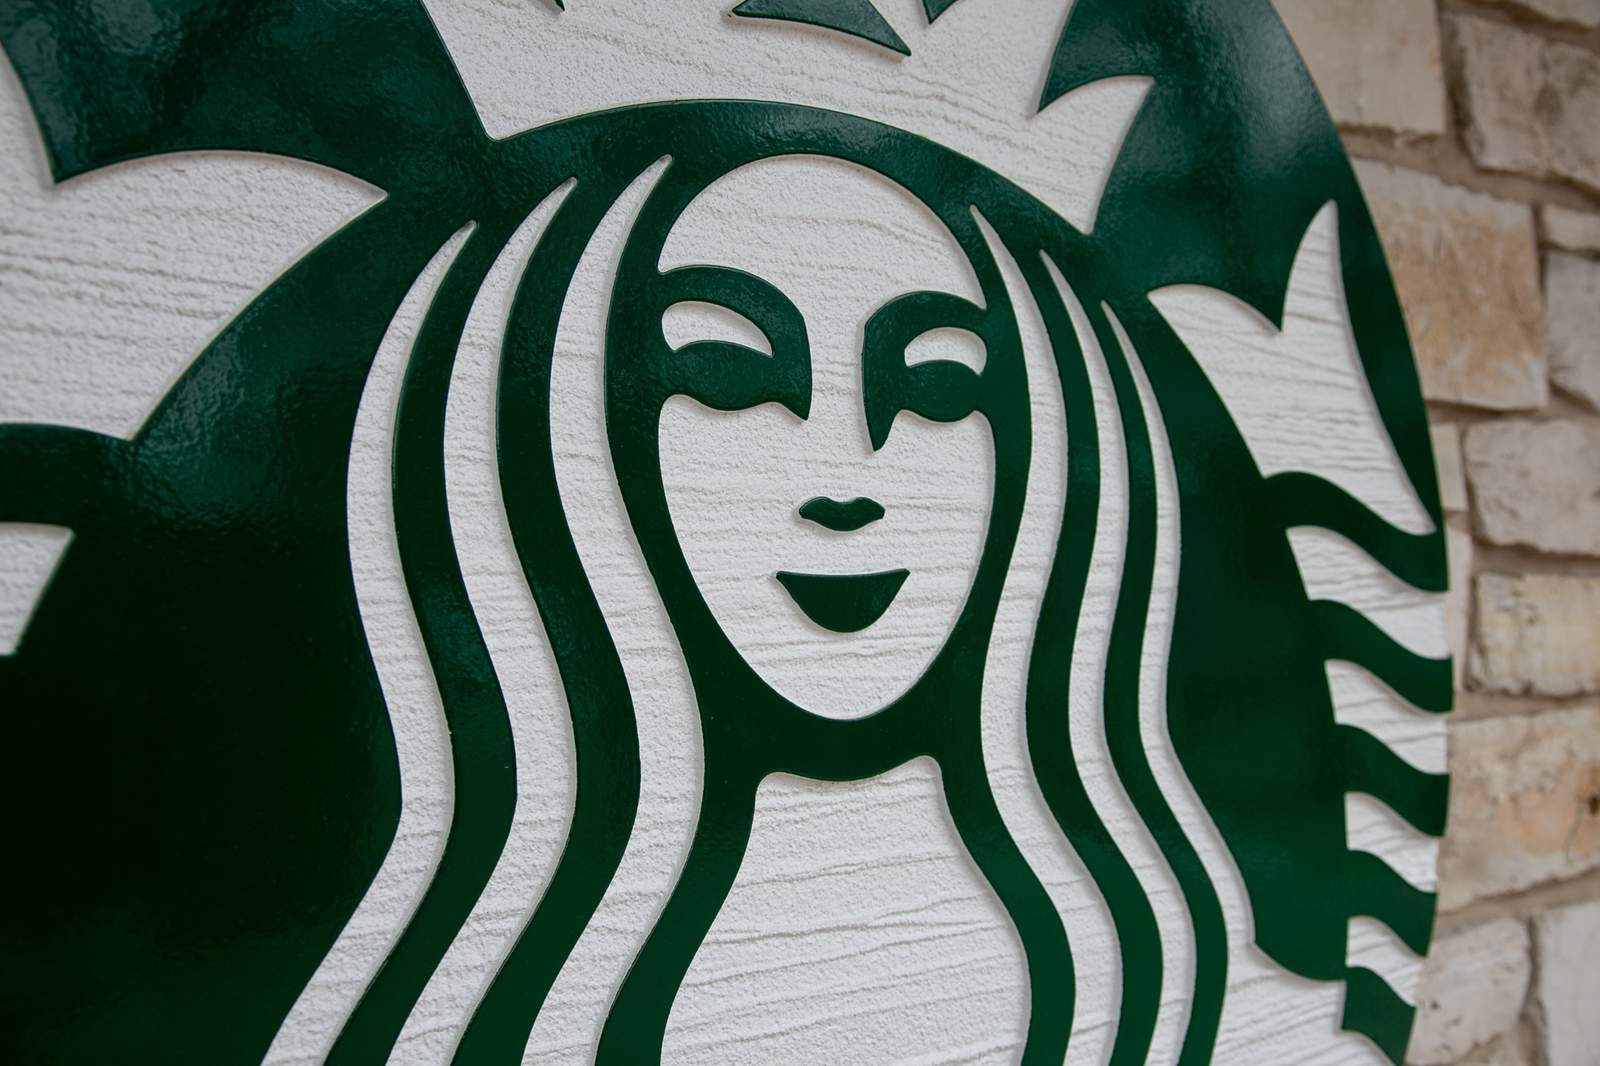 Starbucks Supports Black Barista's Response In Confrontation With Anti-mask Customer photo